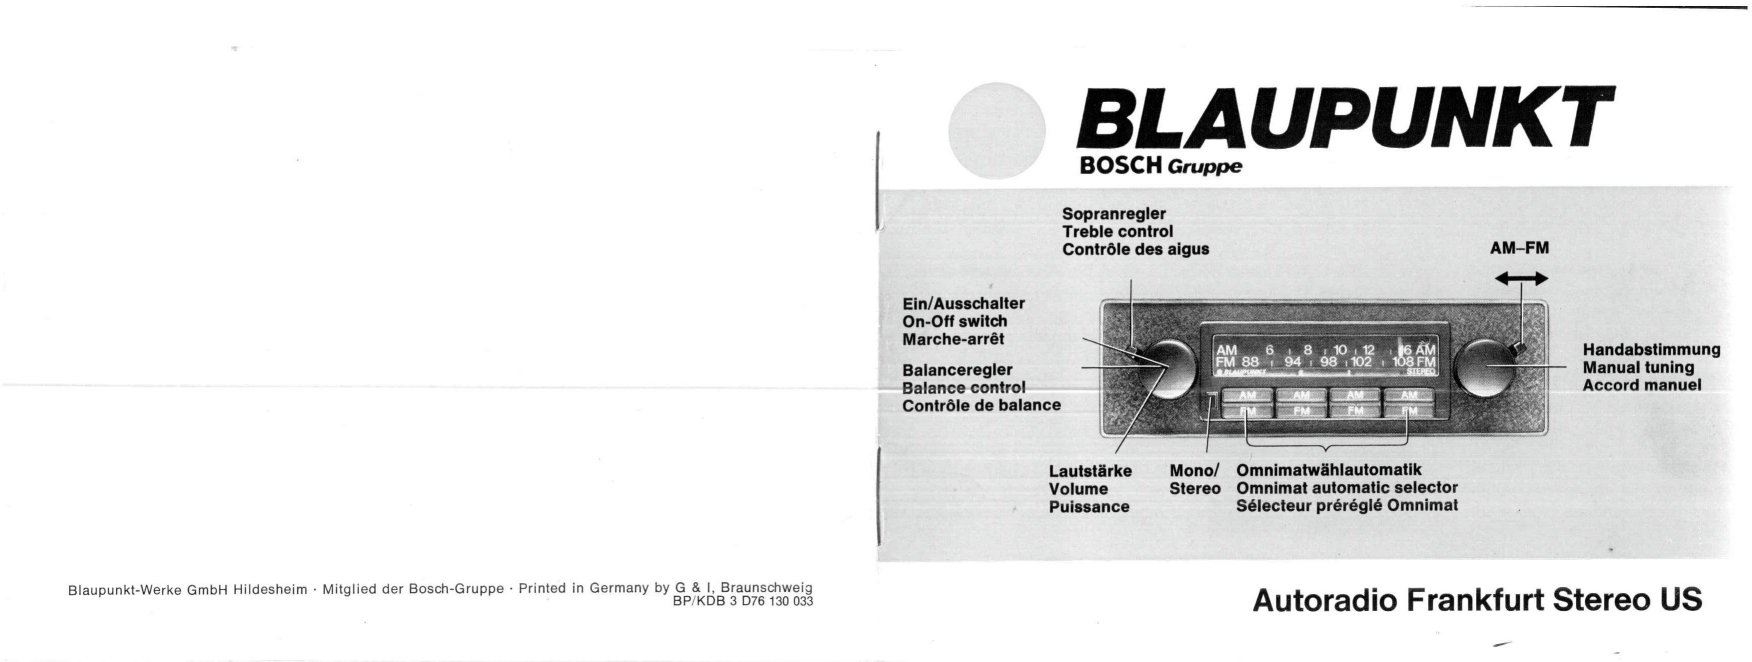 thesamba com 1977 blaupunkt frankfurt stereo us installation and rh thesamba com Car Owners Manual Corvette Owners Manual